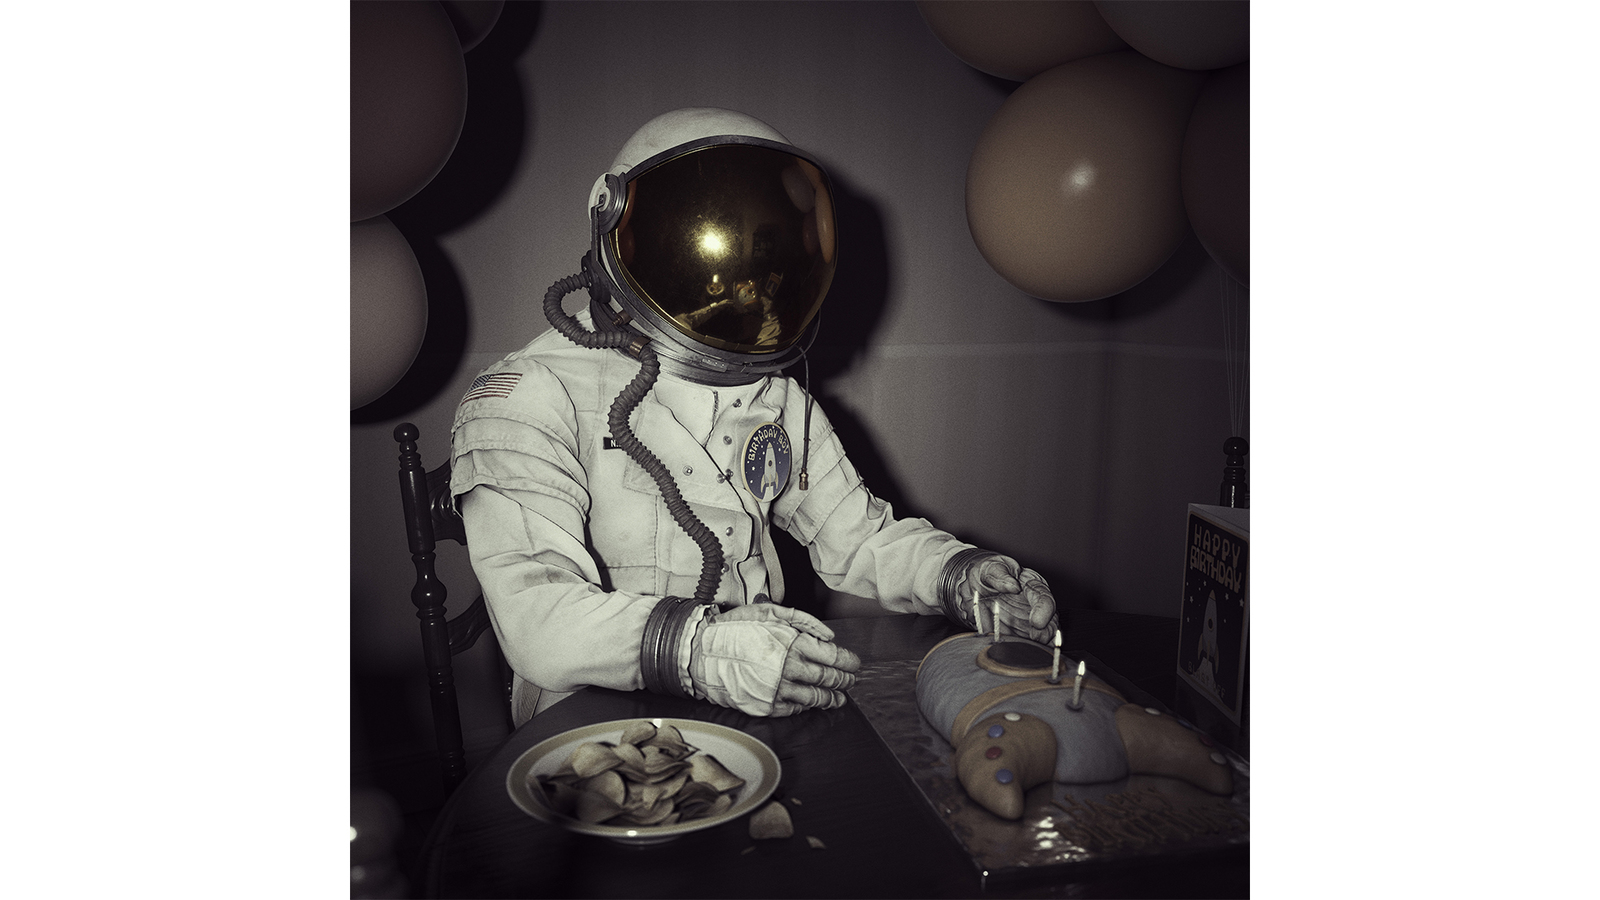 Full render of Transmissions, a CG hyper realistic scene of a spaceman seated at a table with a rocket birthday cake, a bowl of crisps and balloons. The render is photographic with a vintage, 1970s saturation to the colour